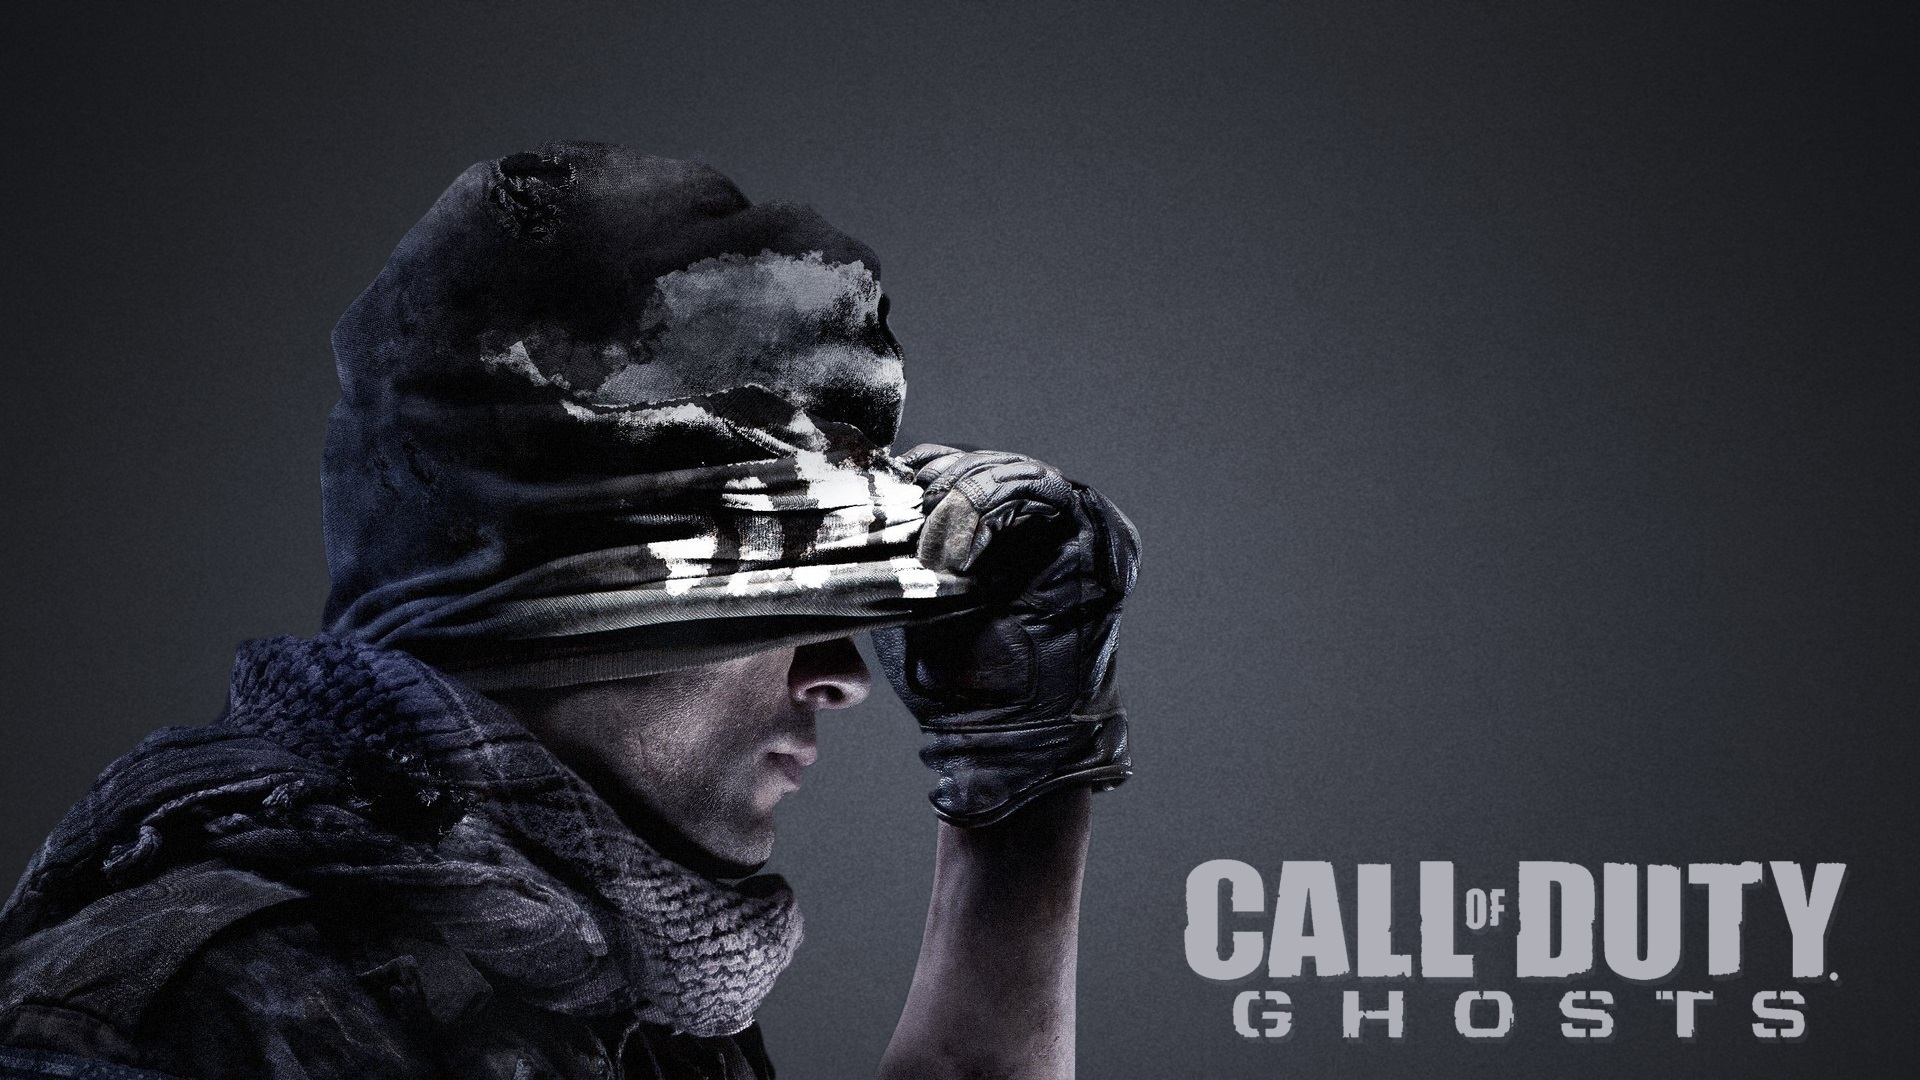 High Resolution Wallpaper | Call Of Duty: Ghosts 1920x1080 px